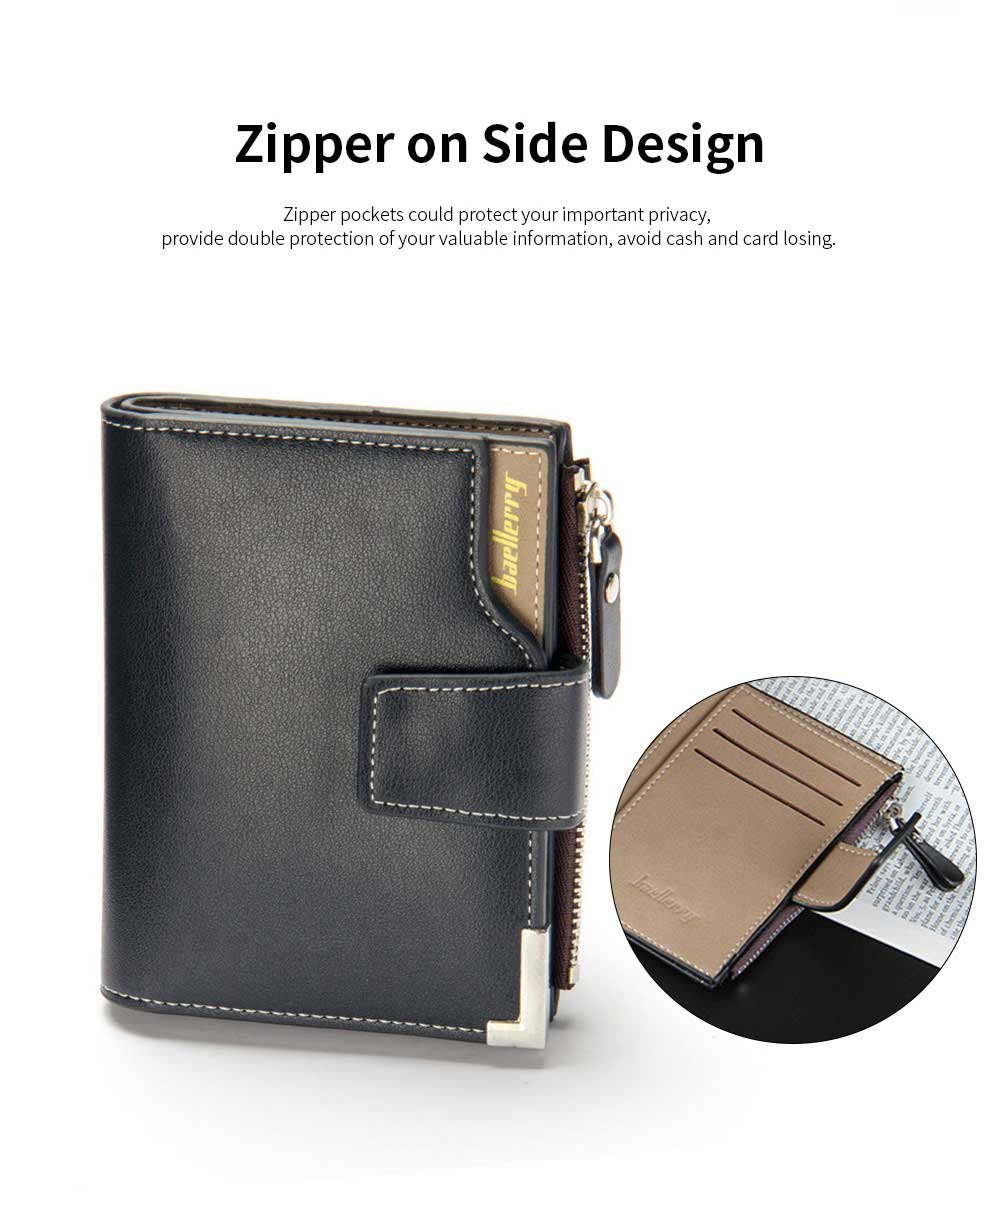 Men's Tri-fold PU Leather Handbag with Zipper, Multi-functional Organizer Card Cash Wallet for Men 2